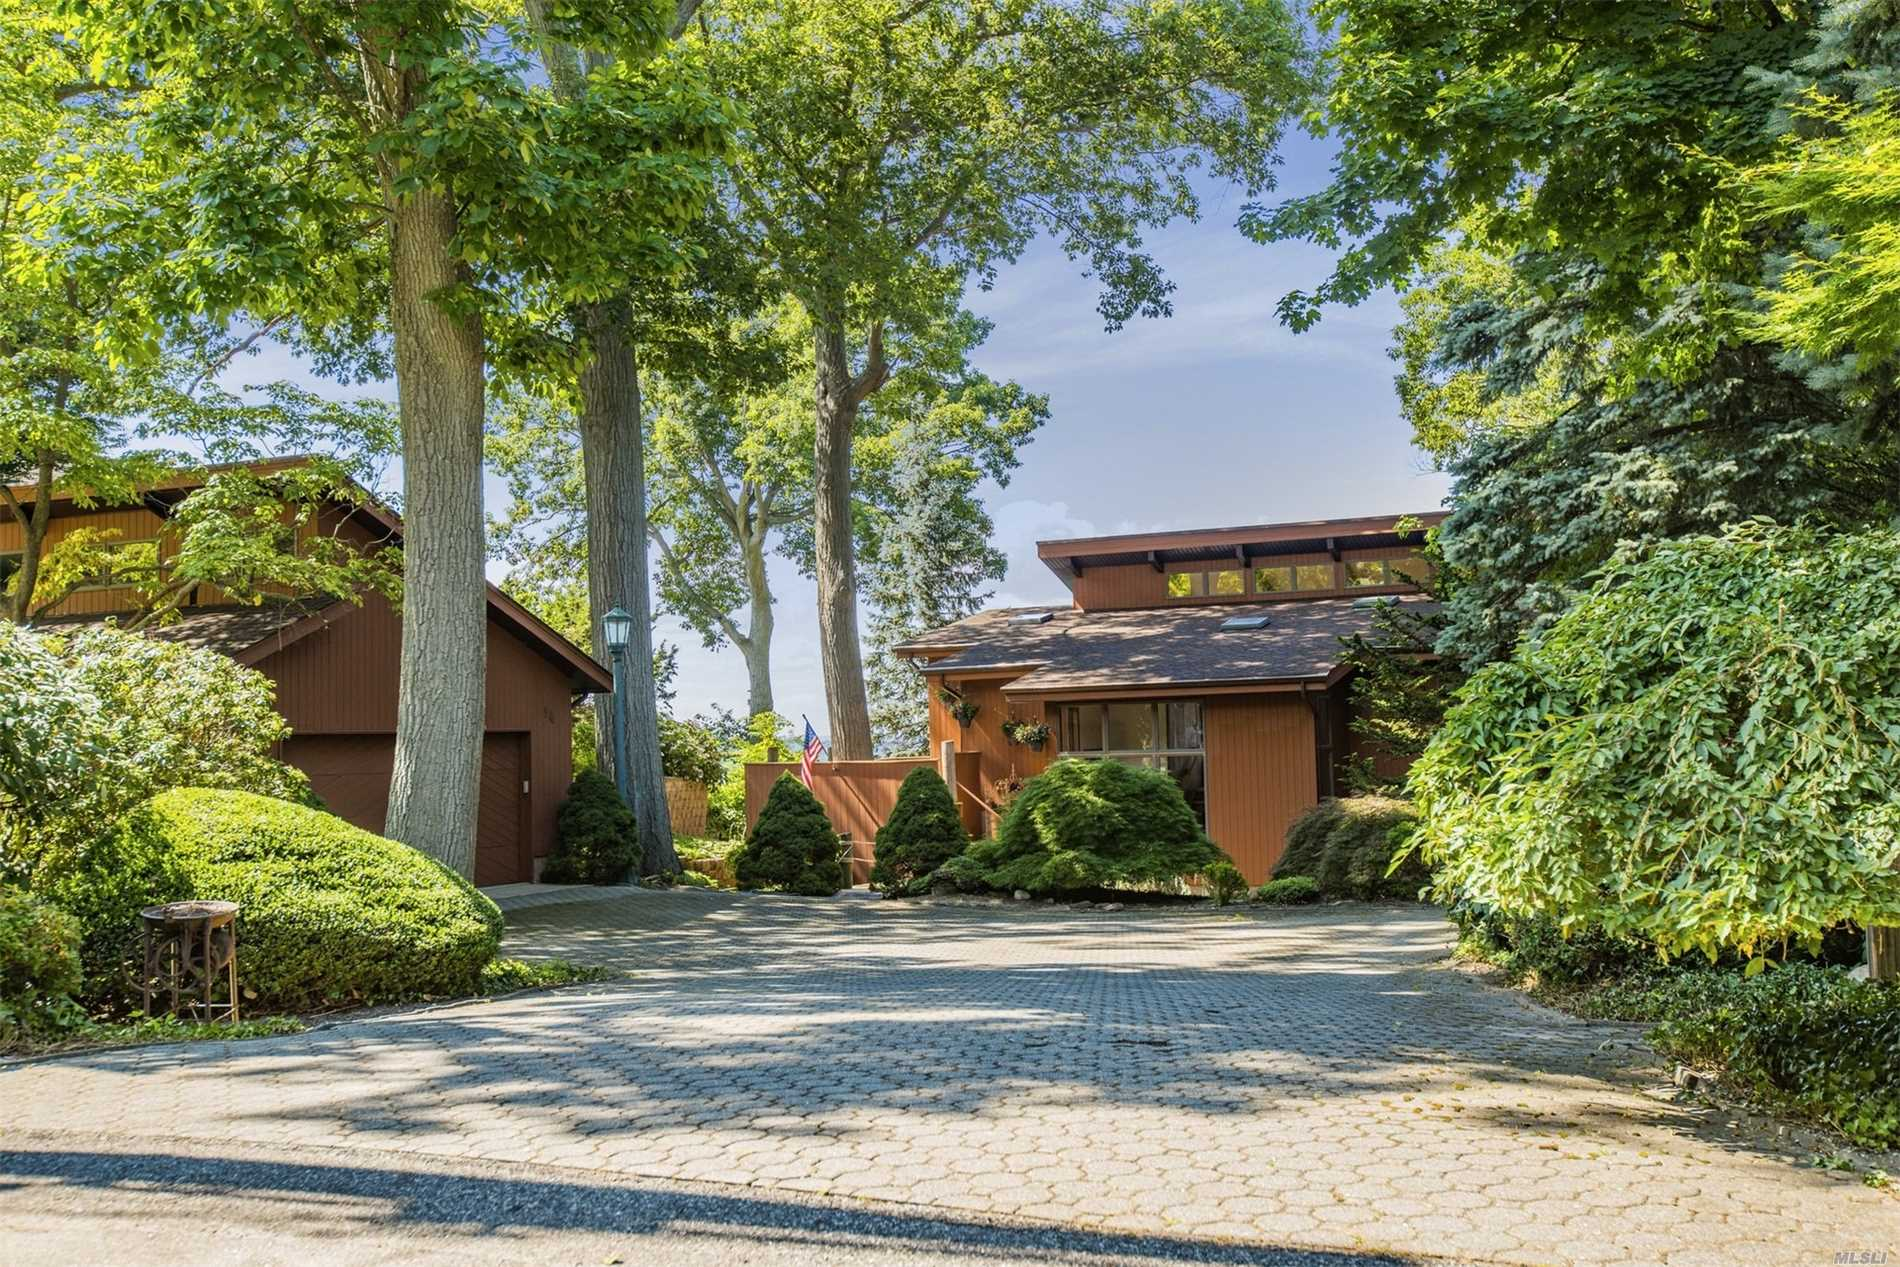 Live Your Dream Every Day In This One Of A Kind Contemporary Style Home That Offers Stunning Views!! The Wonderful Outdoor Living Space Allows You To Soak Up The Sun While Relaxing And Enjoying The Captivated Views Of Northport And Connecticut. This Home Offers An Inviting Floor Plan That Is Open And Spacious, Perfect For Entertaining. Large Detached 2 Car Garage With Circular Driveway For Ease Of Parking. Make This Your Next Dream Home.....